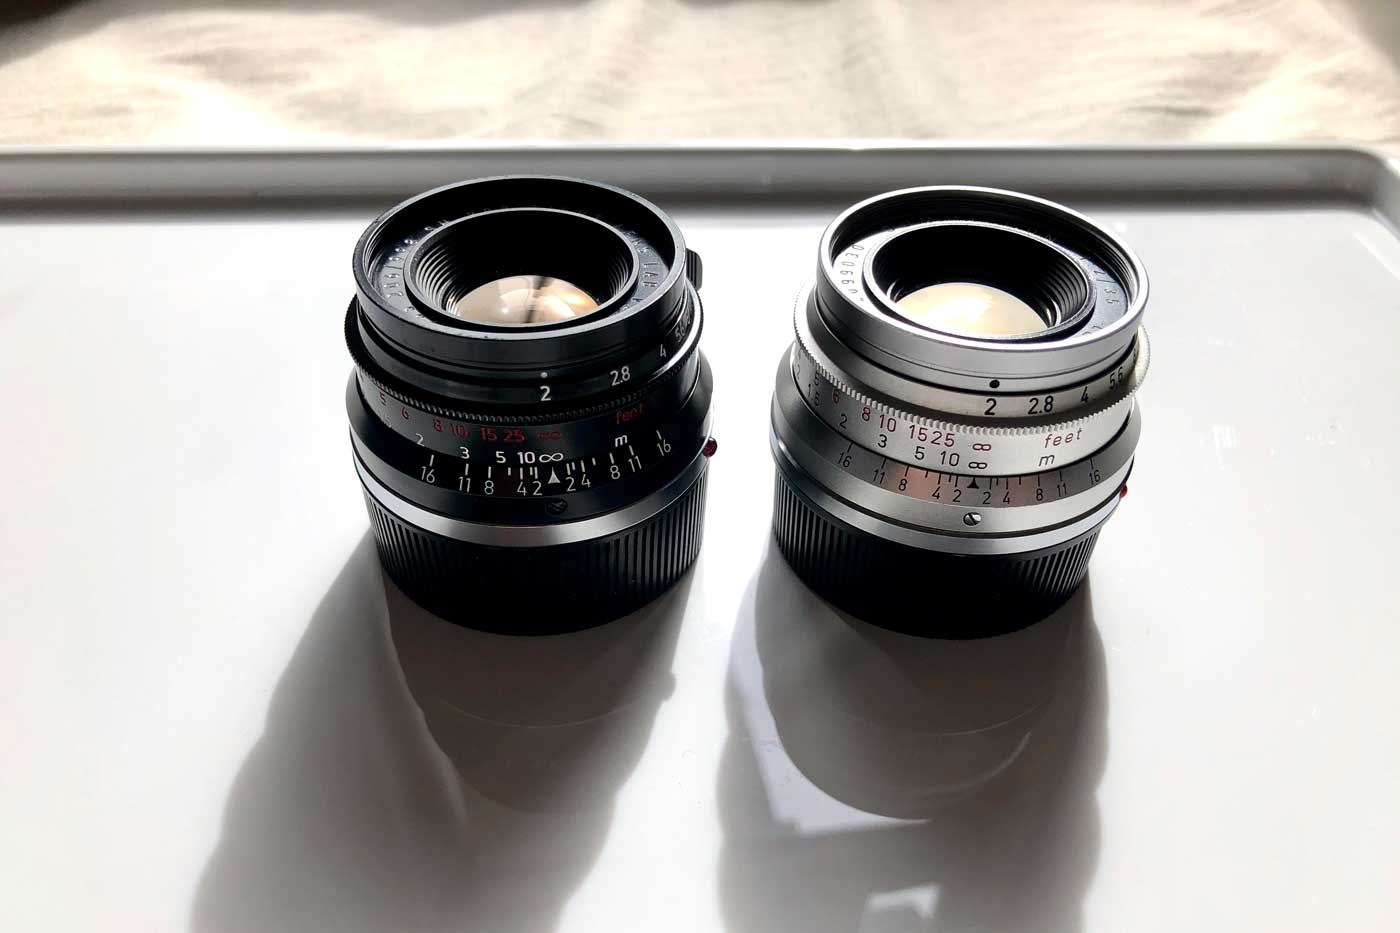 zhou-8elements-summicron-35mm-f2-v1-comparison-replica-performance-aperture-test-lens-leica-black-paint-quality